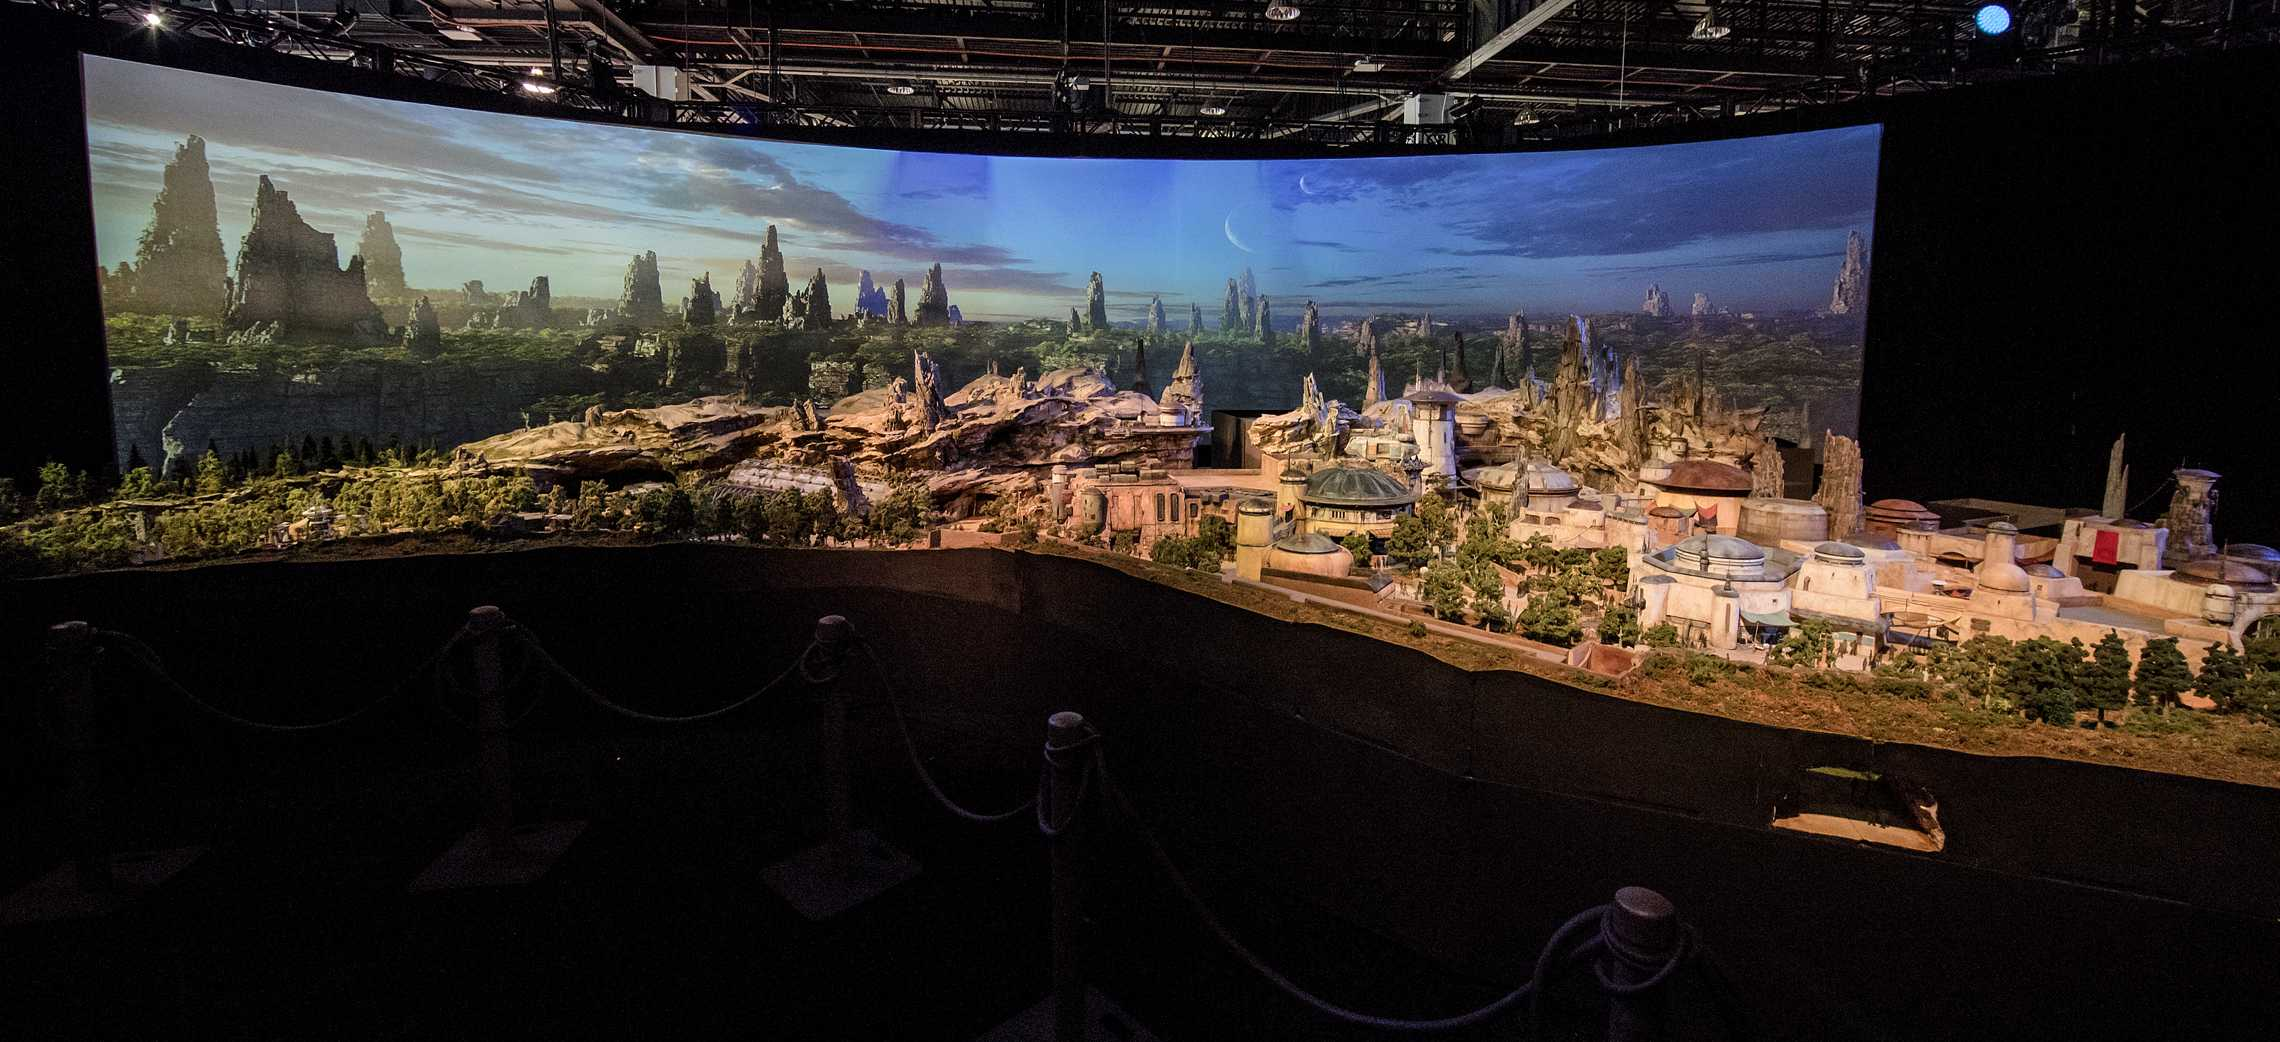 The Star Wars Land model on display at D23 Expo